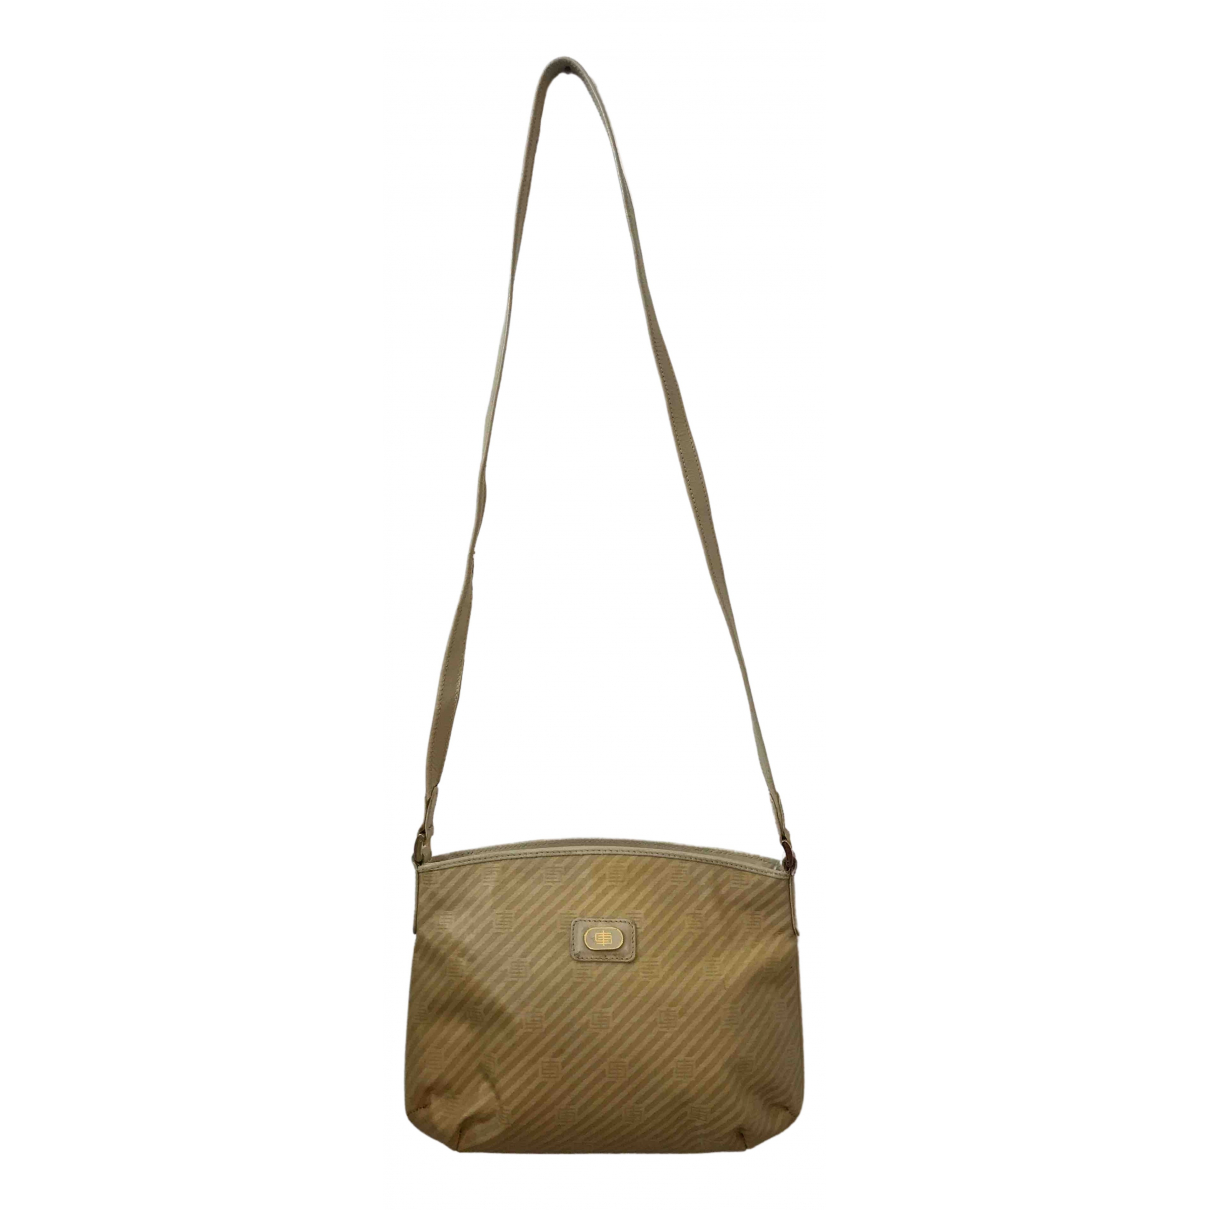 Emilio Pucci N Beige Cloth handbag for Women N